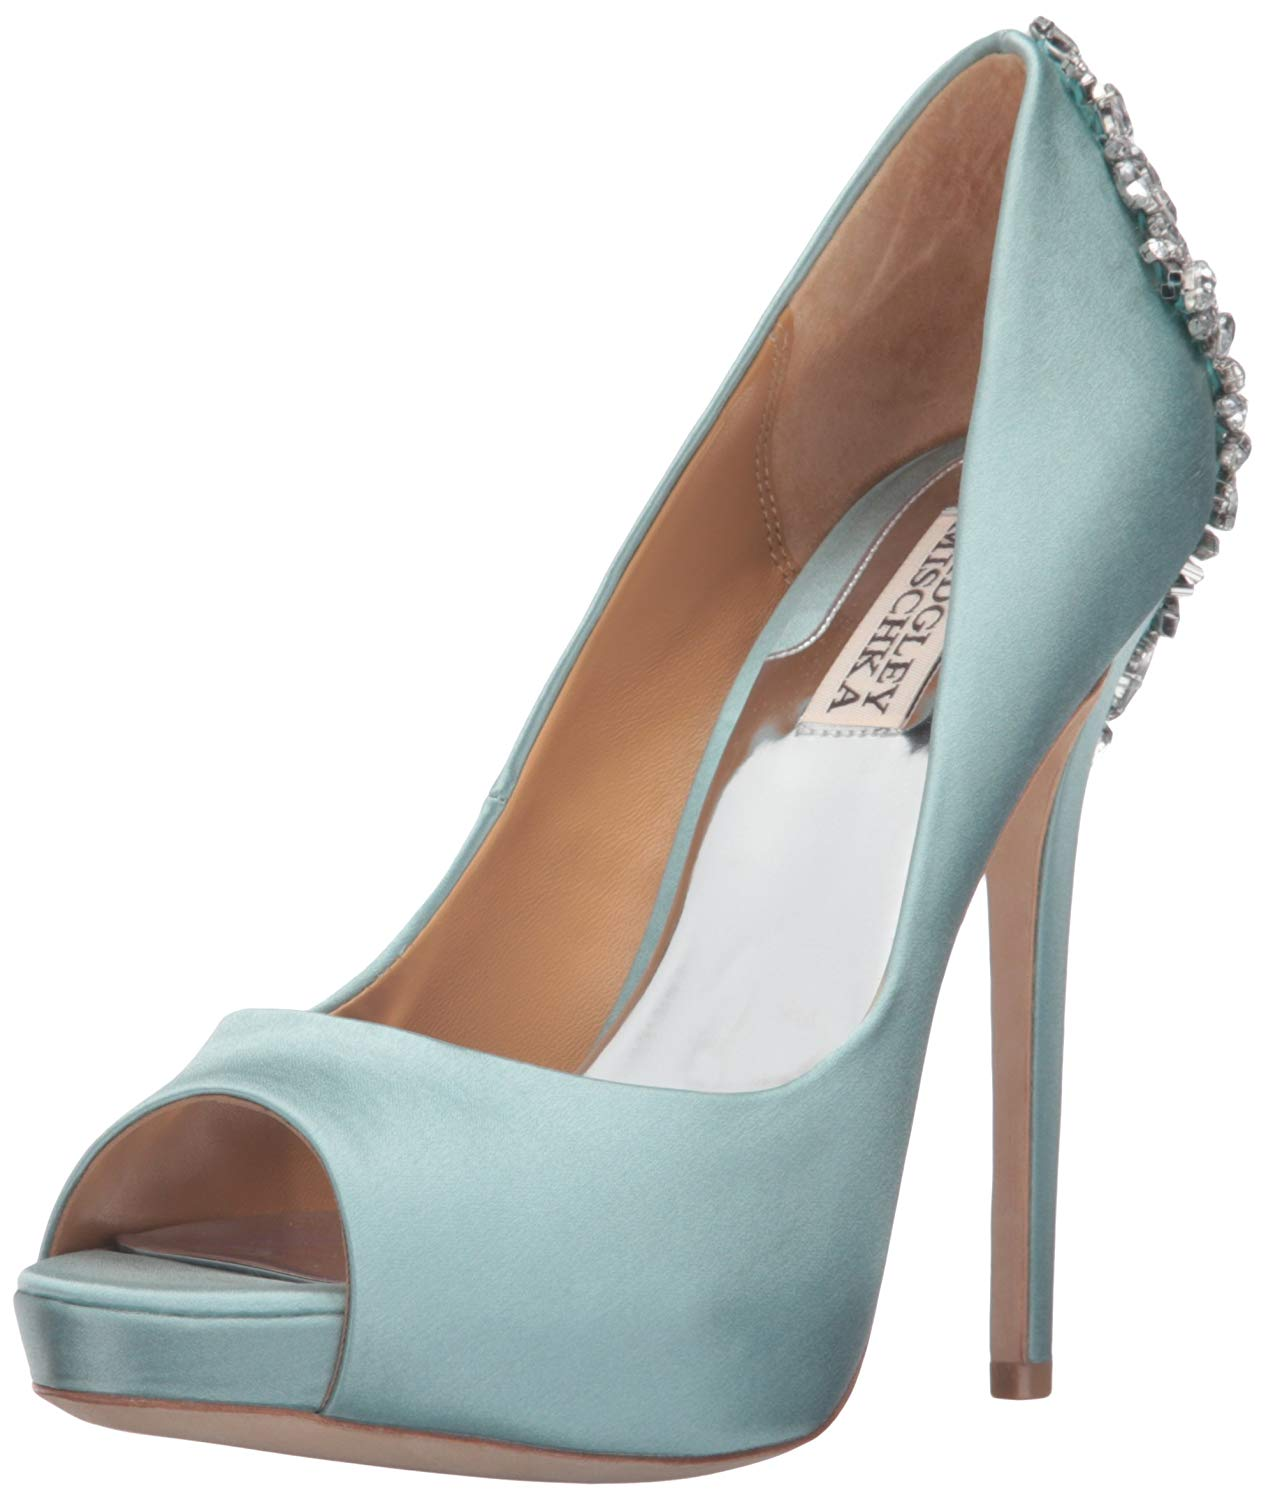 bf74c3d7d98b7 Amazon.com: Badgley Mischka Women's Kiara Platform Pump: Badgley Mischka:  Shoes